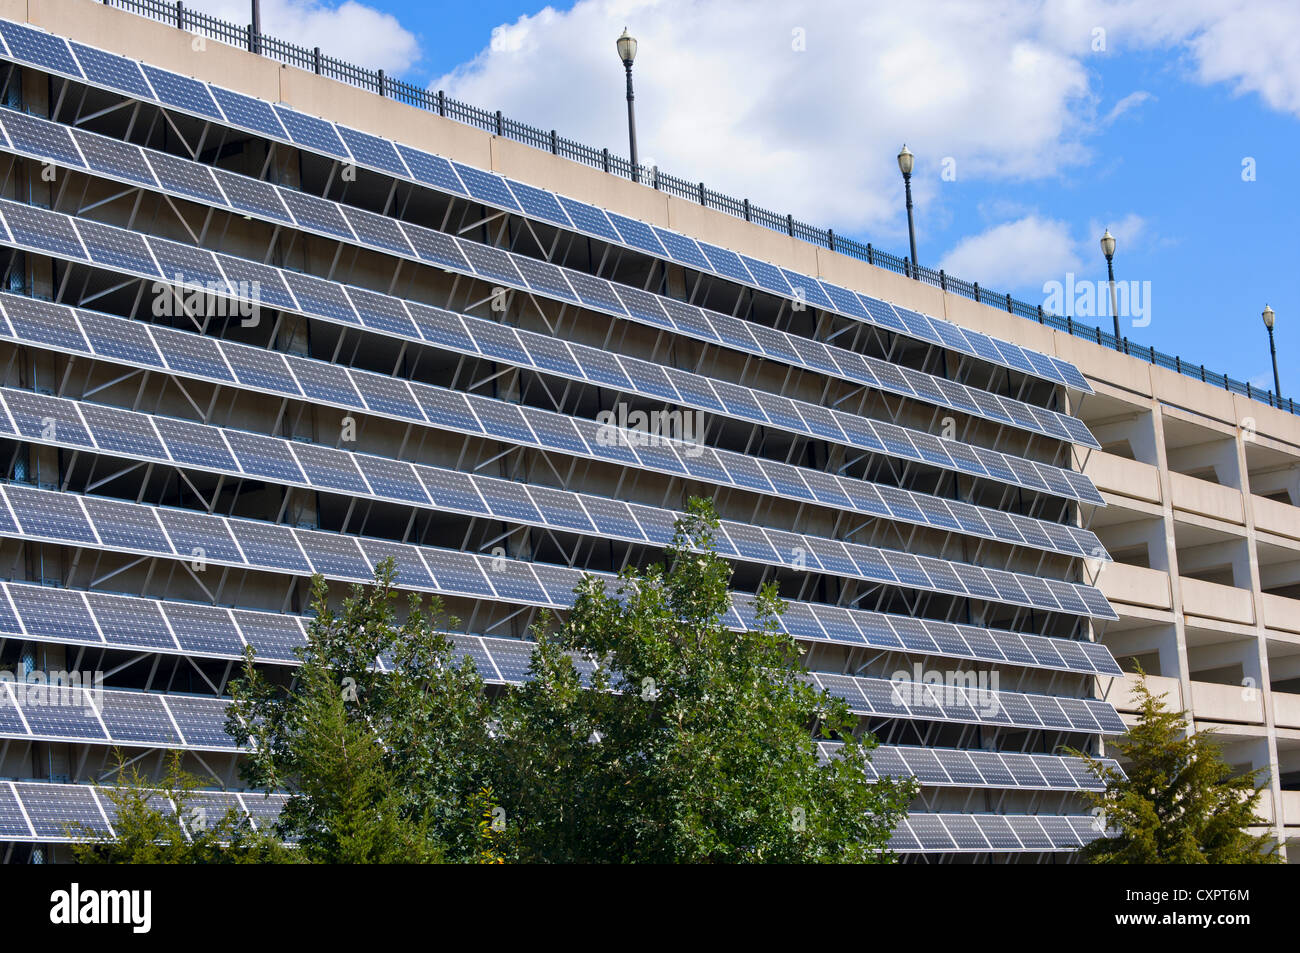 Solar Panels Mounted On Exterior Wall Of Parking Garage In